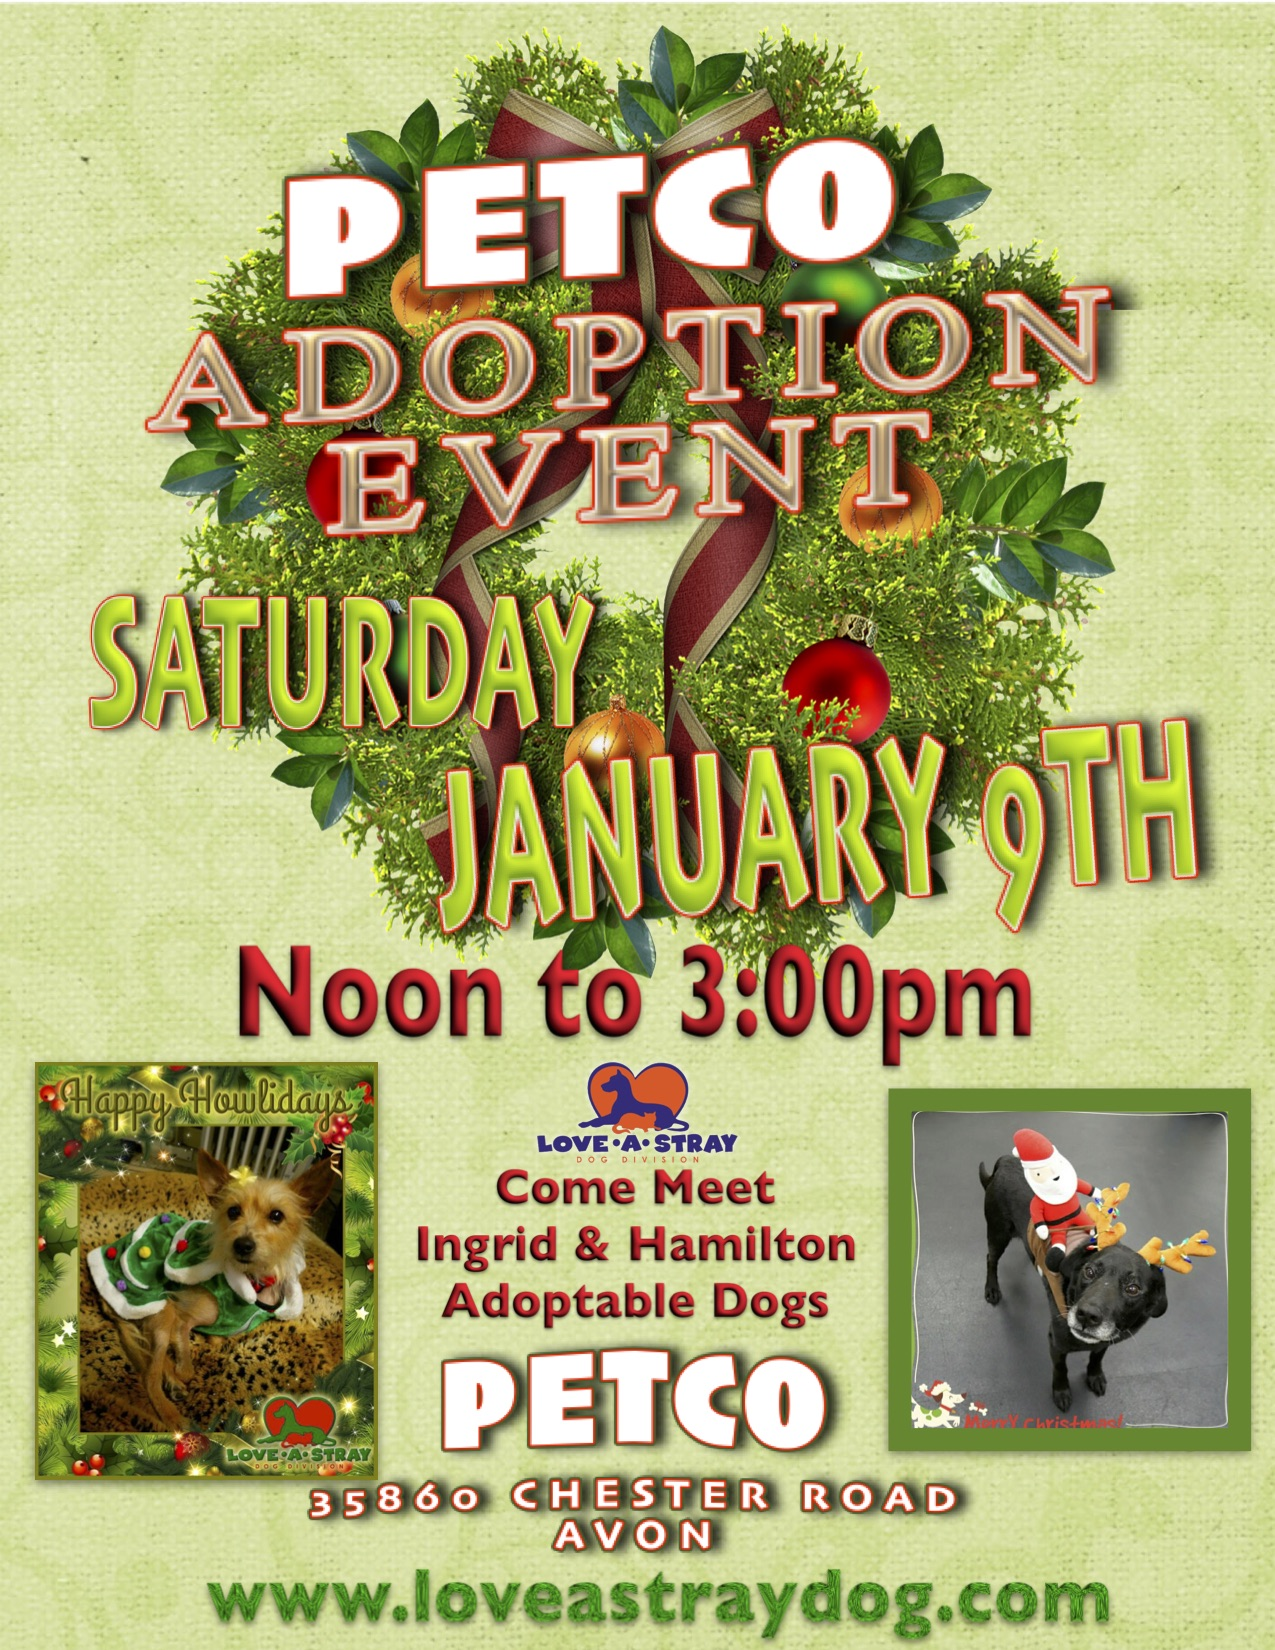 PETCO Adoption Event